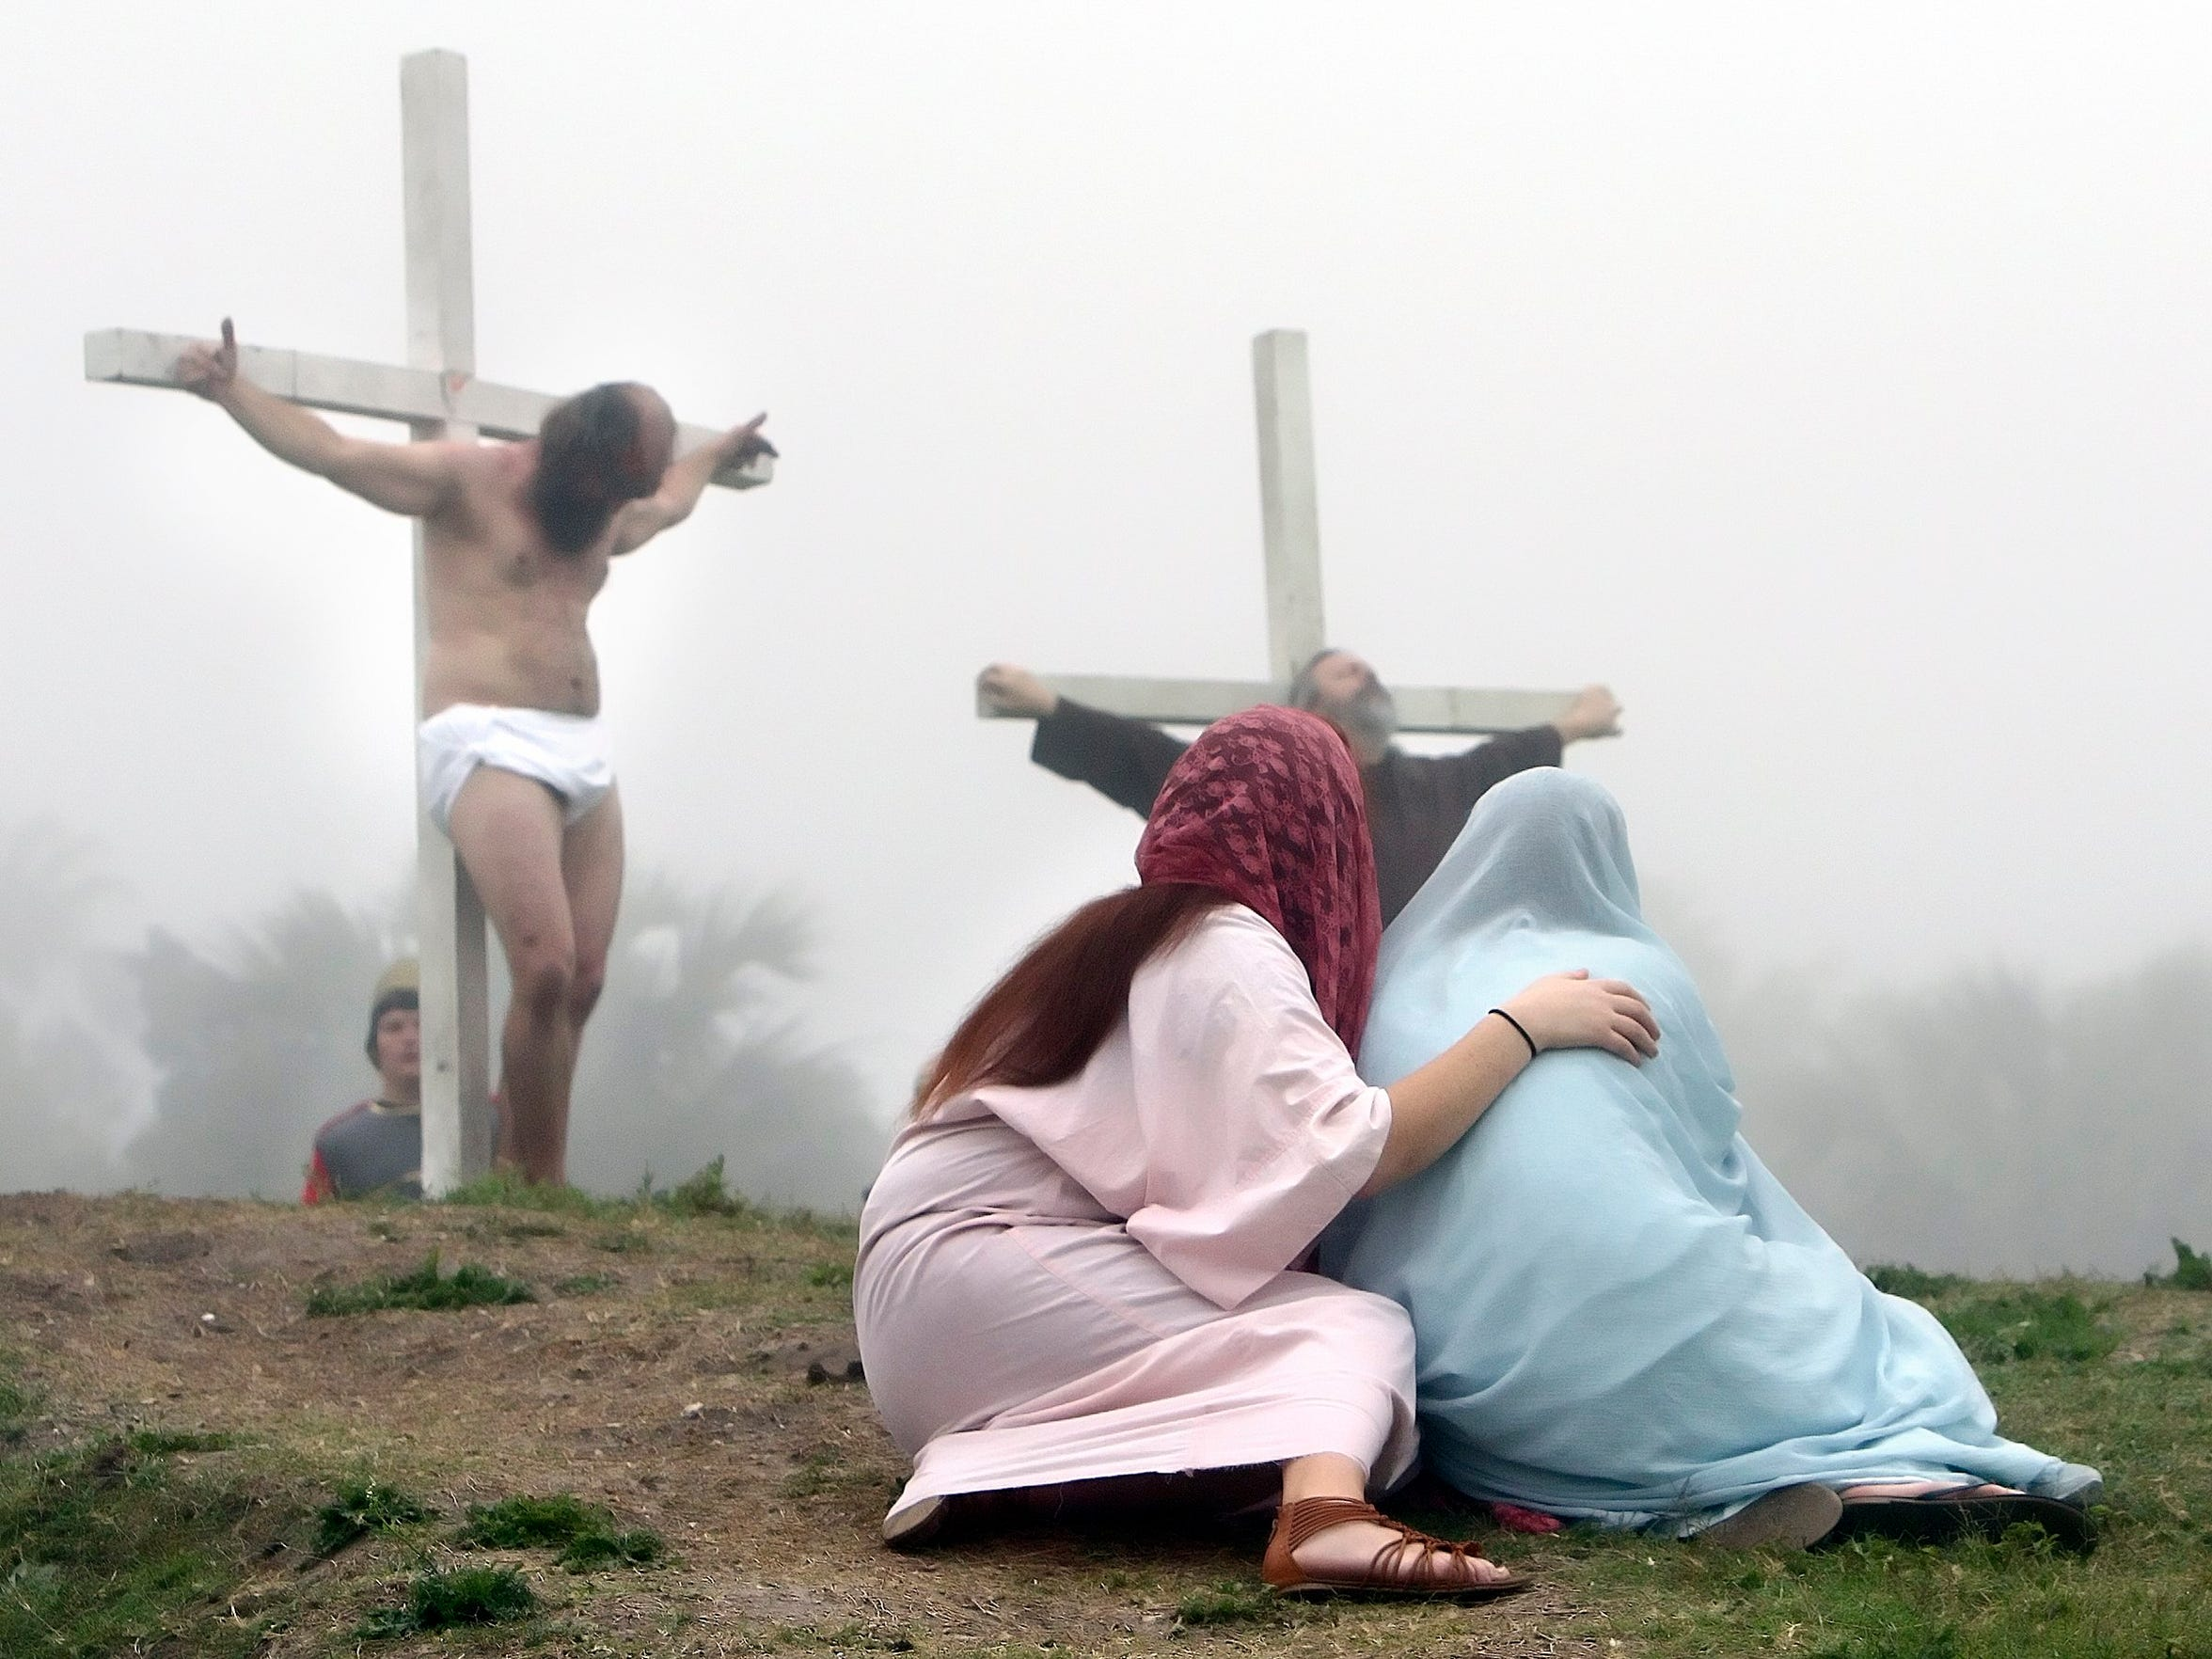 Kiki Pena (left) as Mary Magdalene and Nastassia Abshire as Mary the mother of Jesus sit at the foot of the cross as Jesus, portrayed by Max Moorman, hangs on the cross in March 2016 at Cole Park in Corpus Christi.